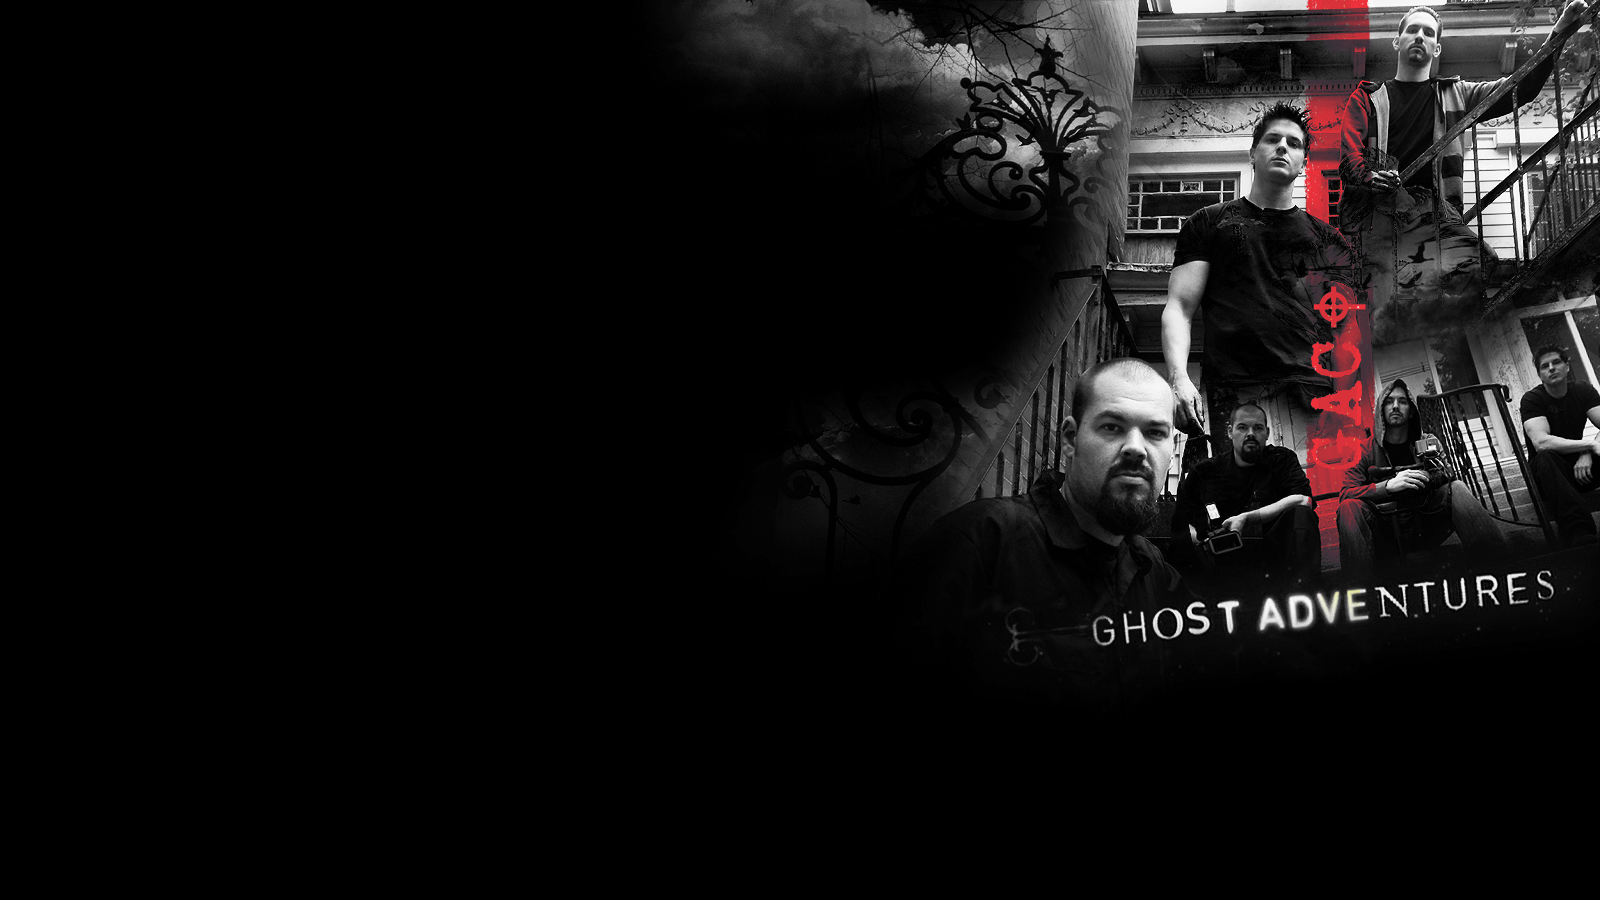 ghost adventures wallpaper | cool hd wallpapers